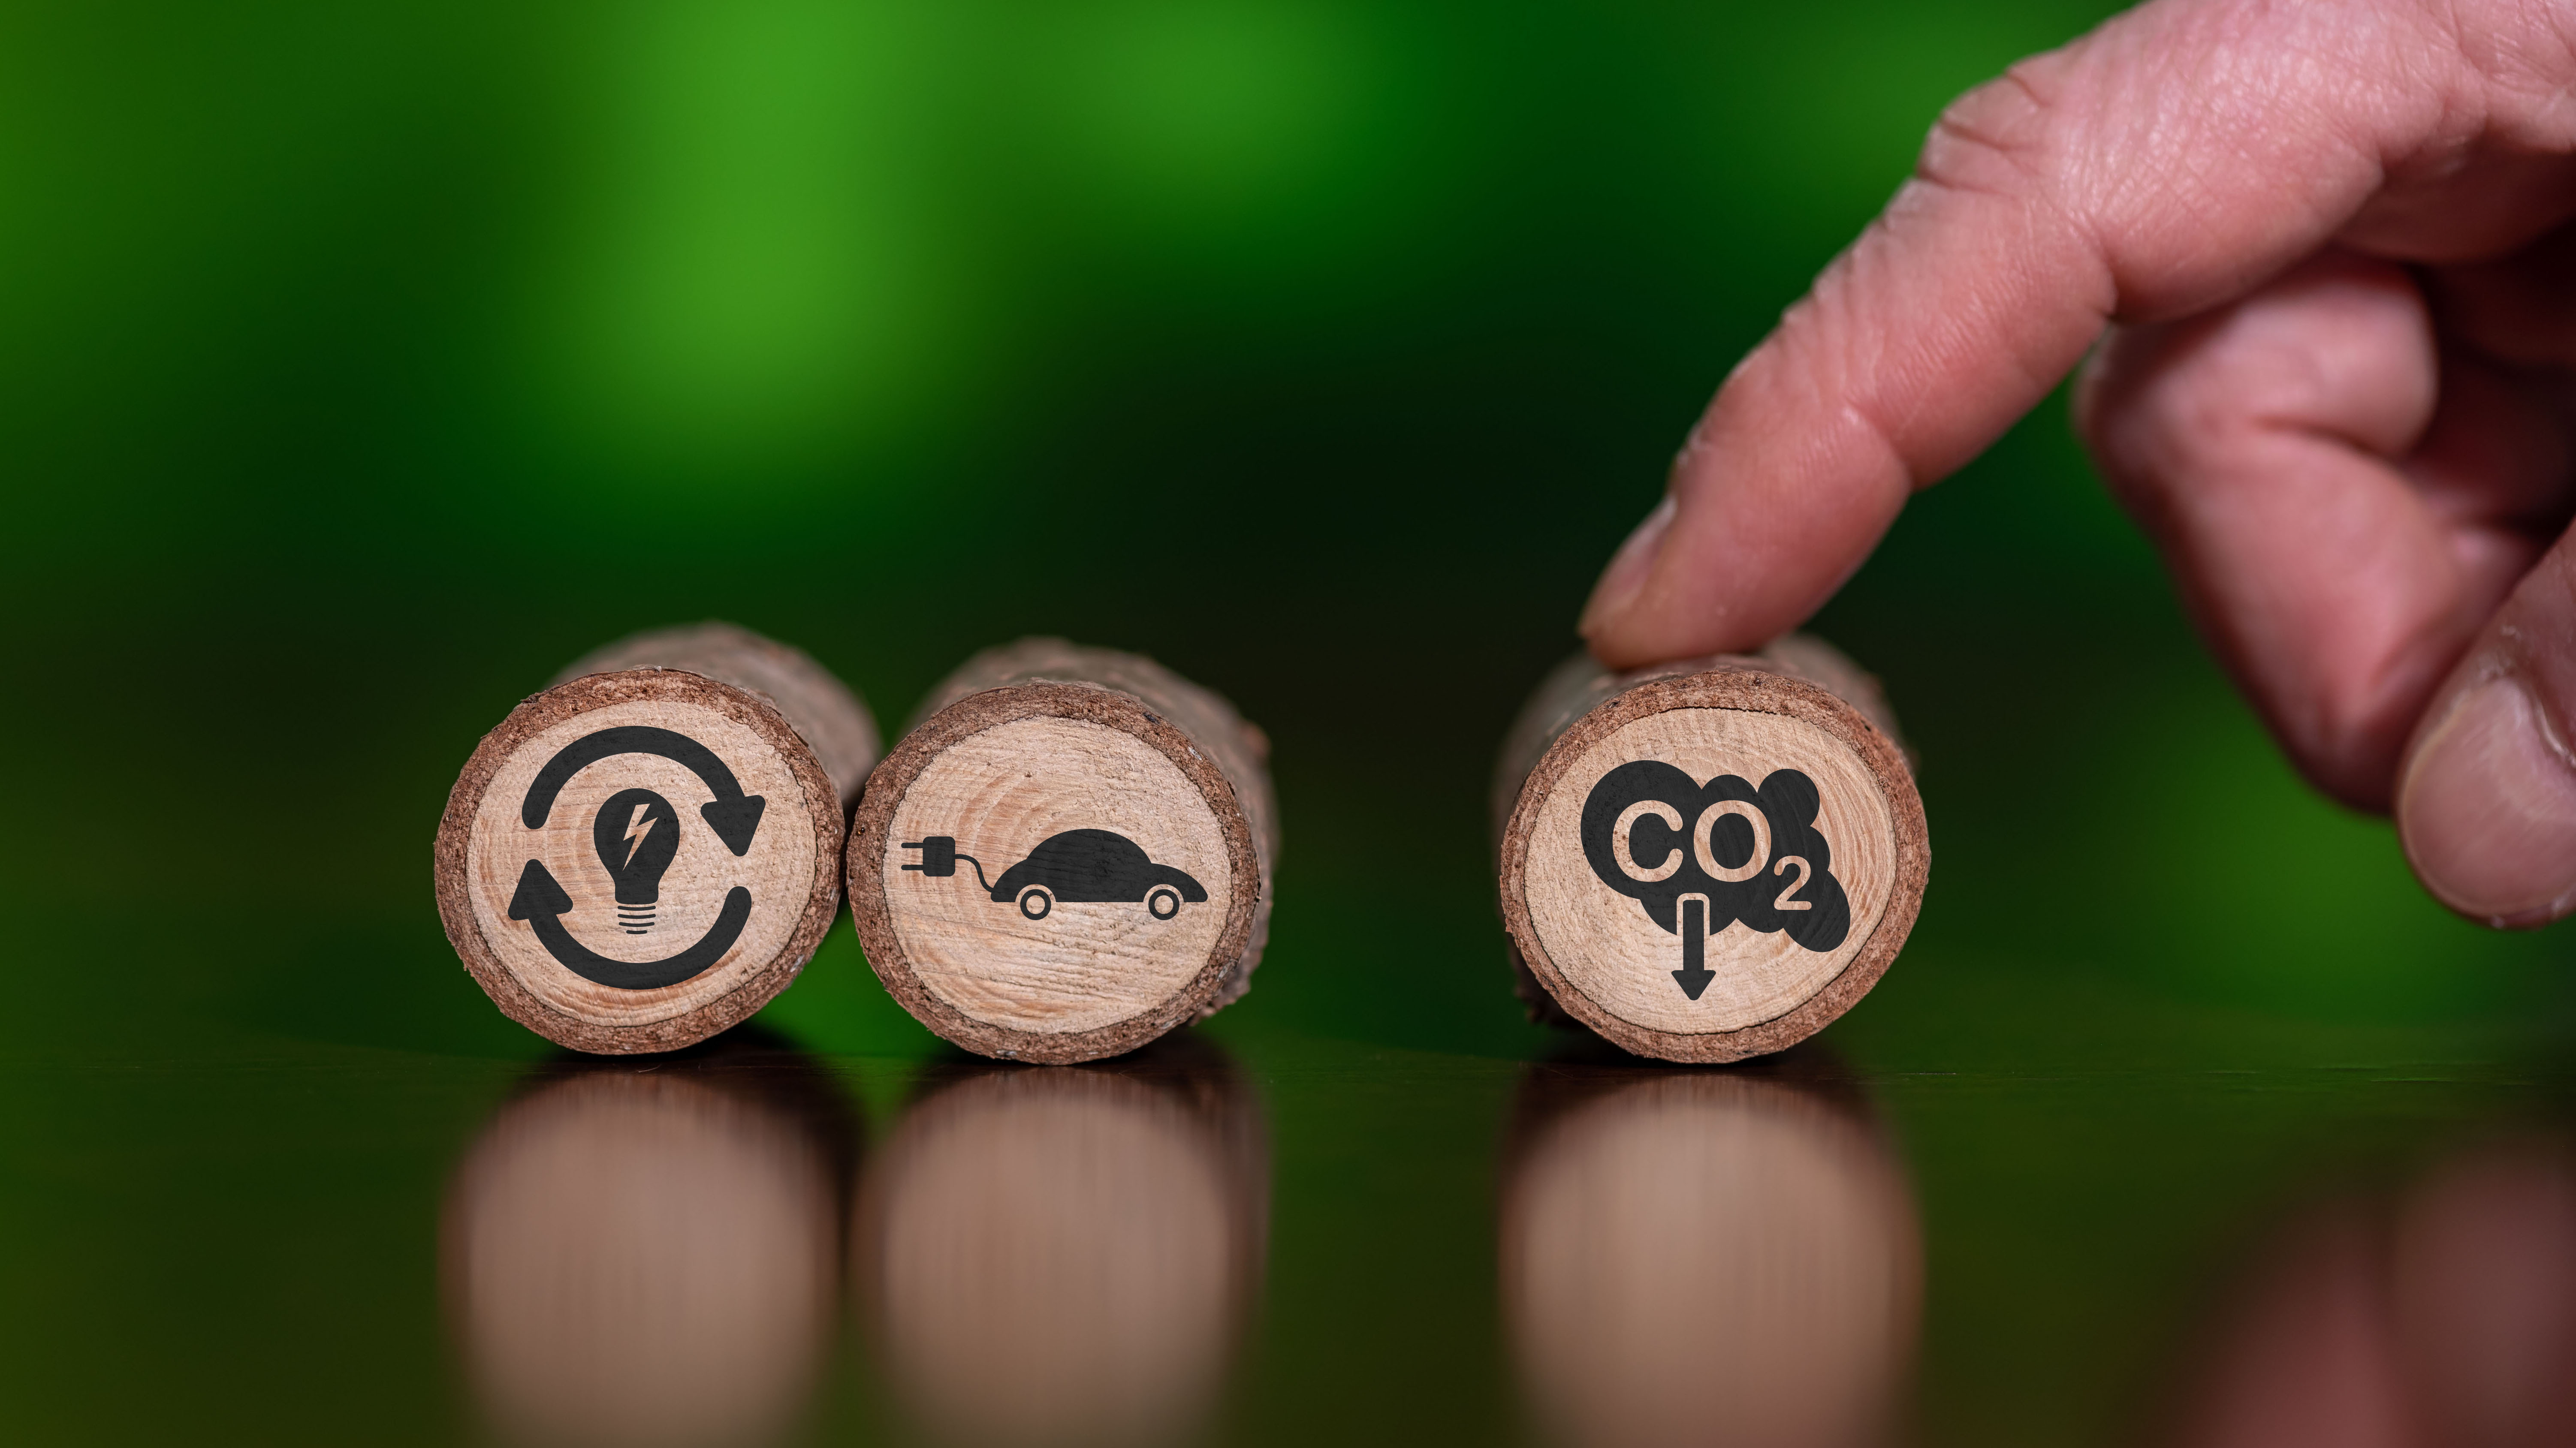 Three symbols representing sustainable energy, electric vehicles, and reducing CO2 emissions.